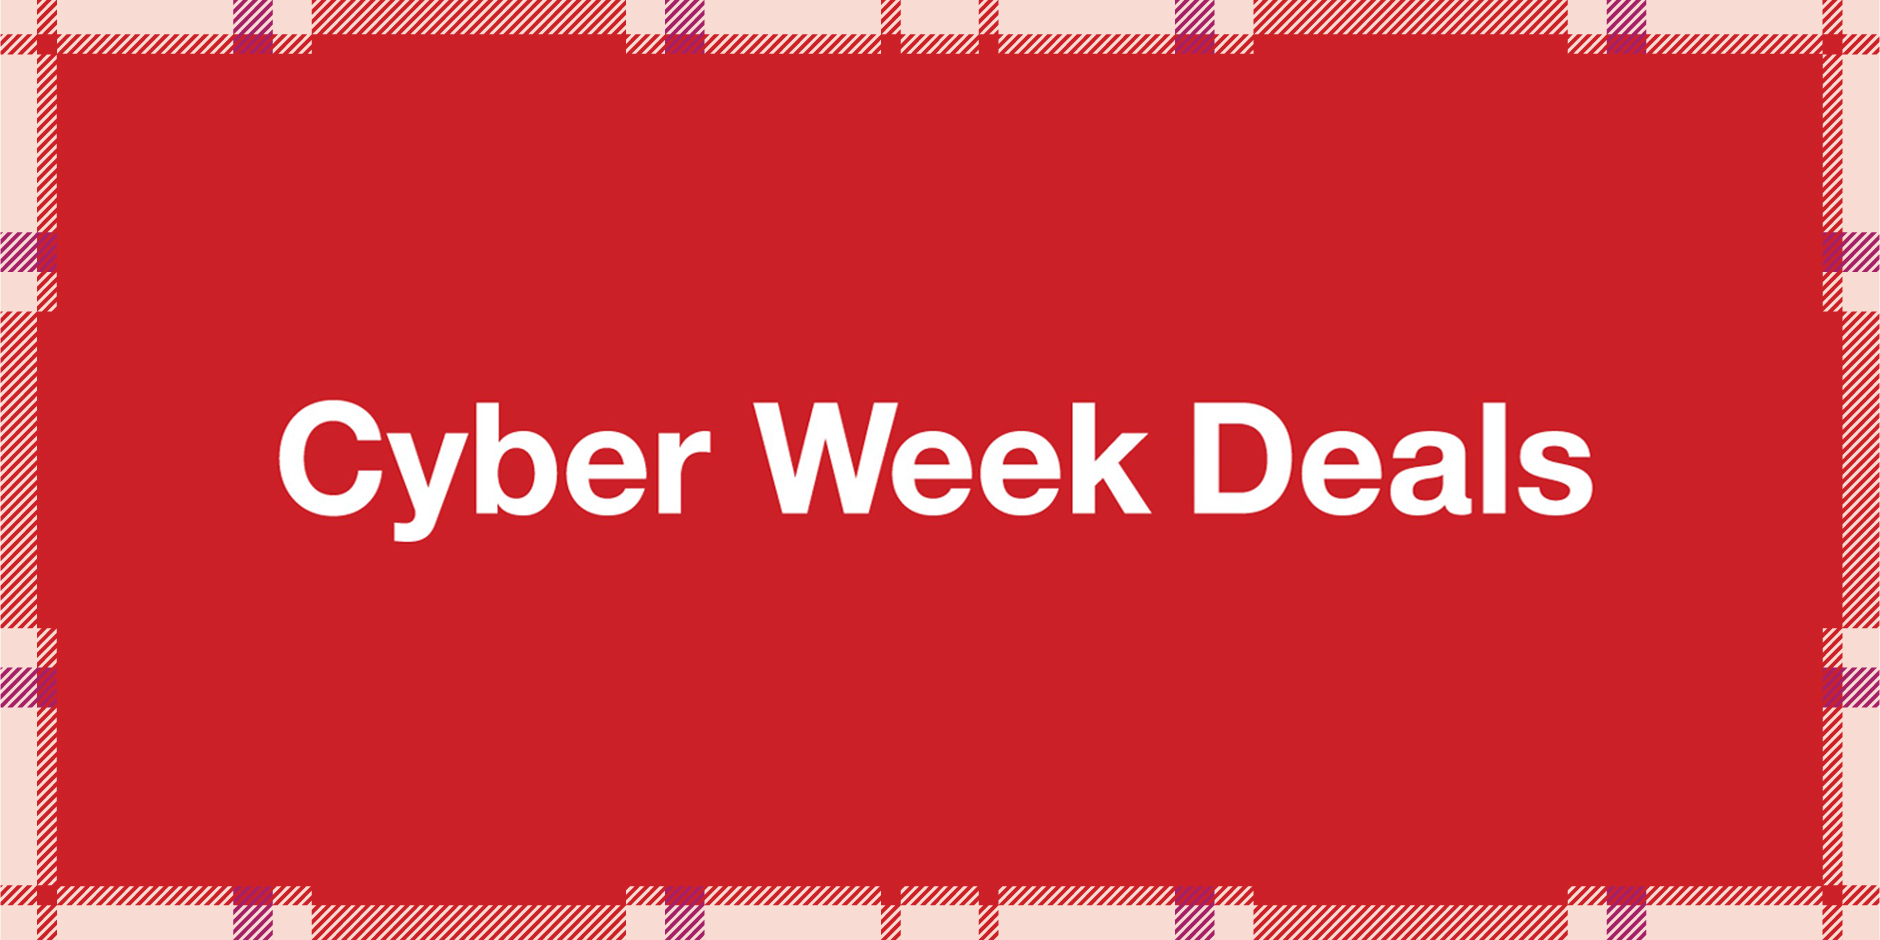 A red background with plaid border and white text: Cyber Week Deals